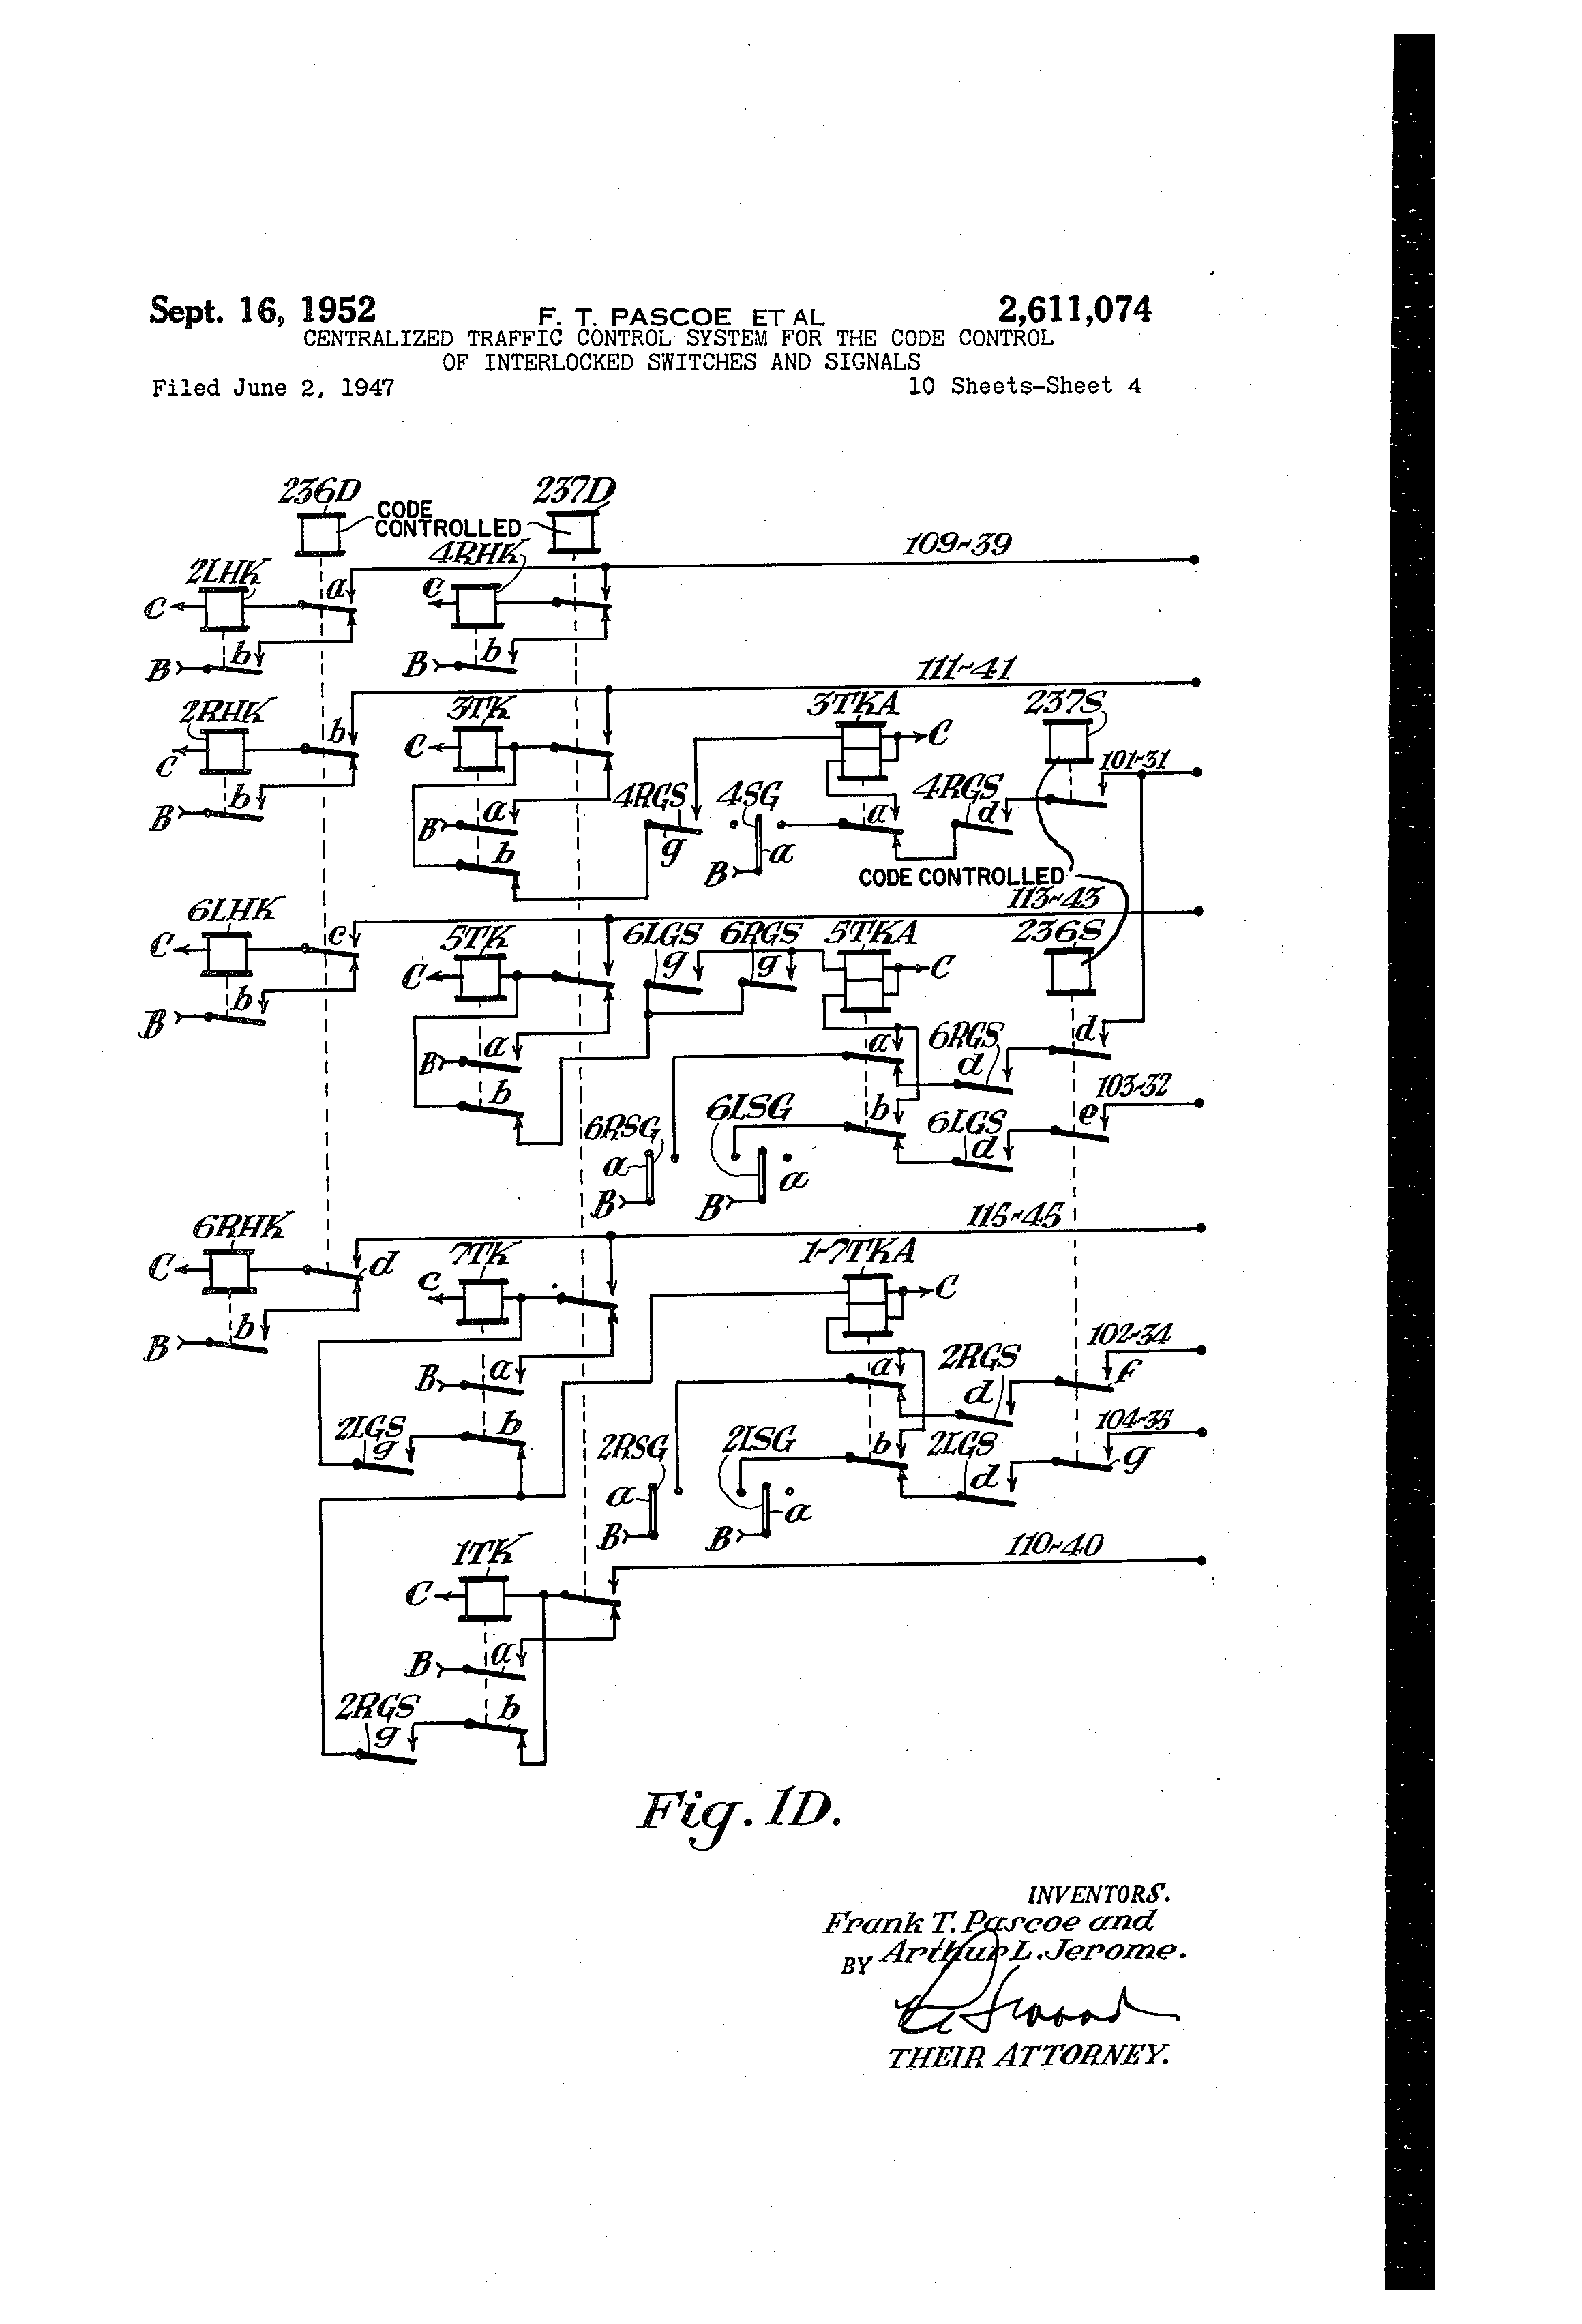 patent us2611074 centralized traffic control system for the code USDM ITR patent drawing